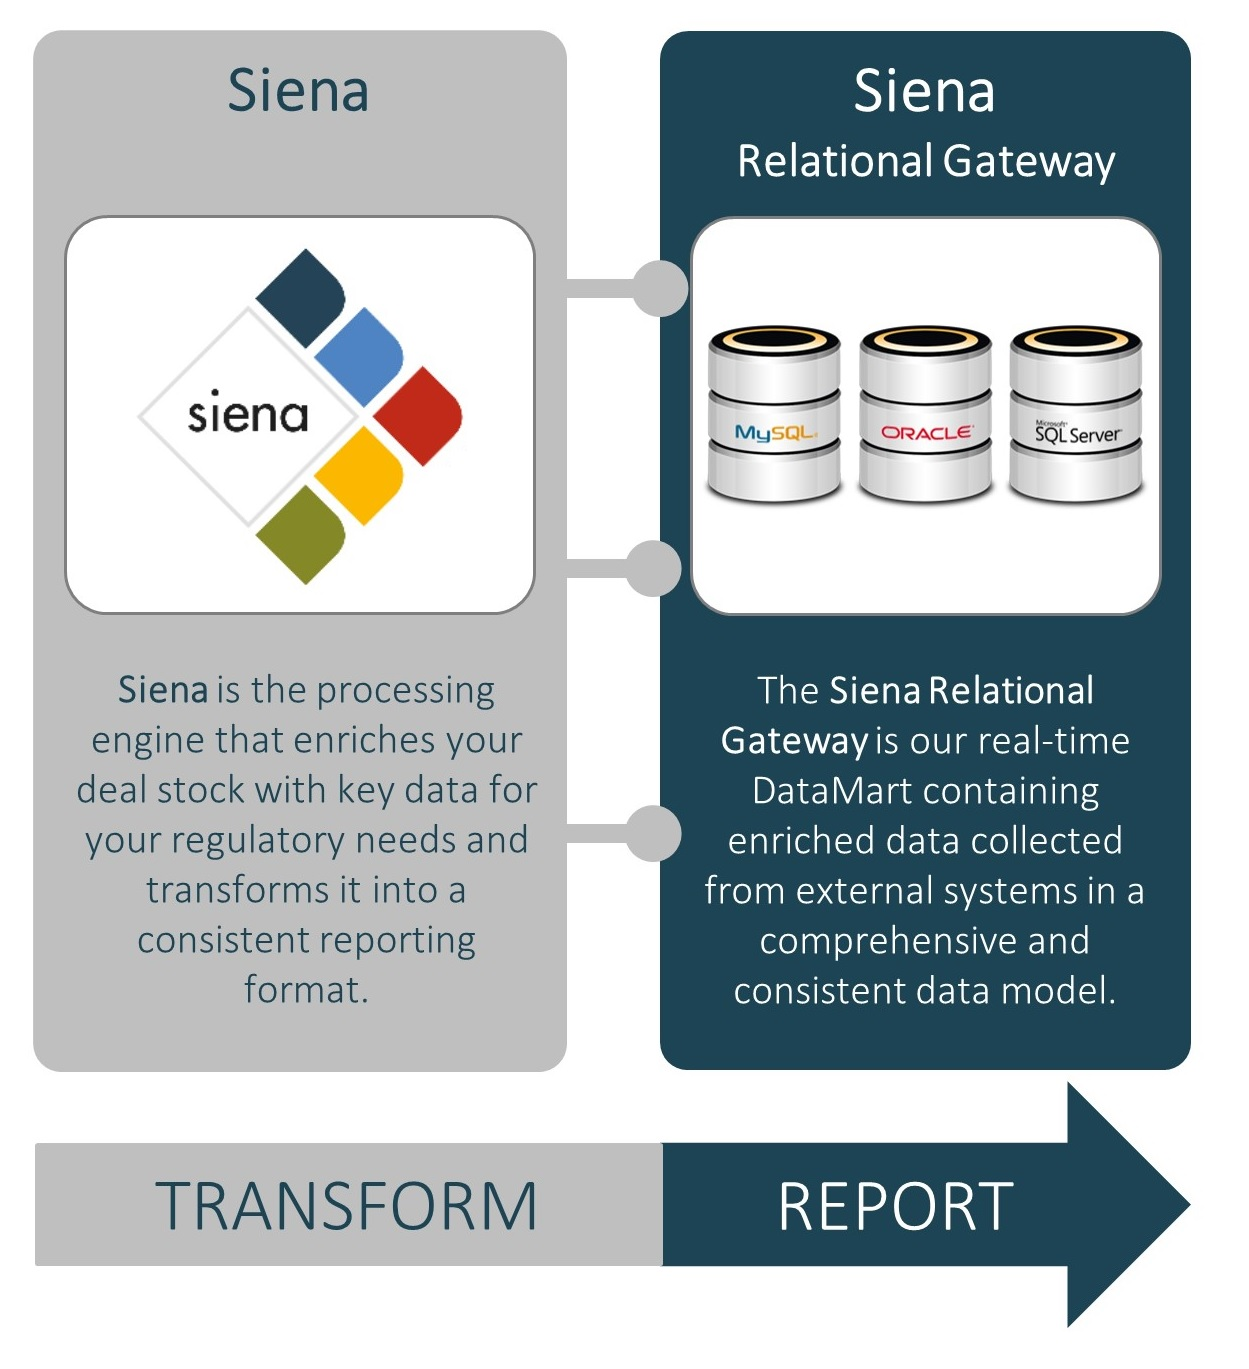 siena regulatory reporting software solution for MiFID II compliance